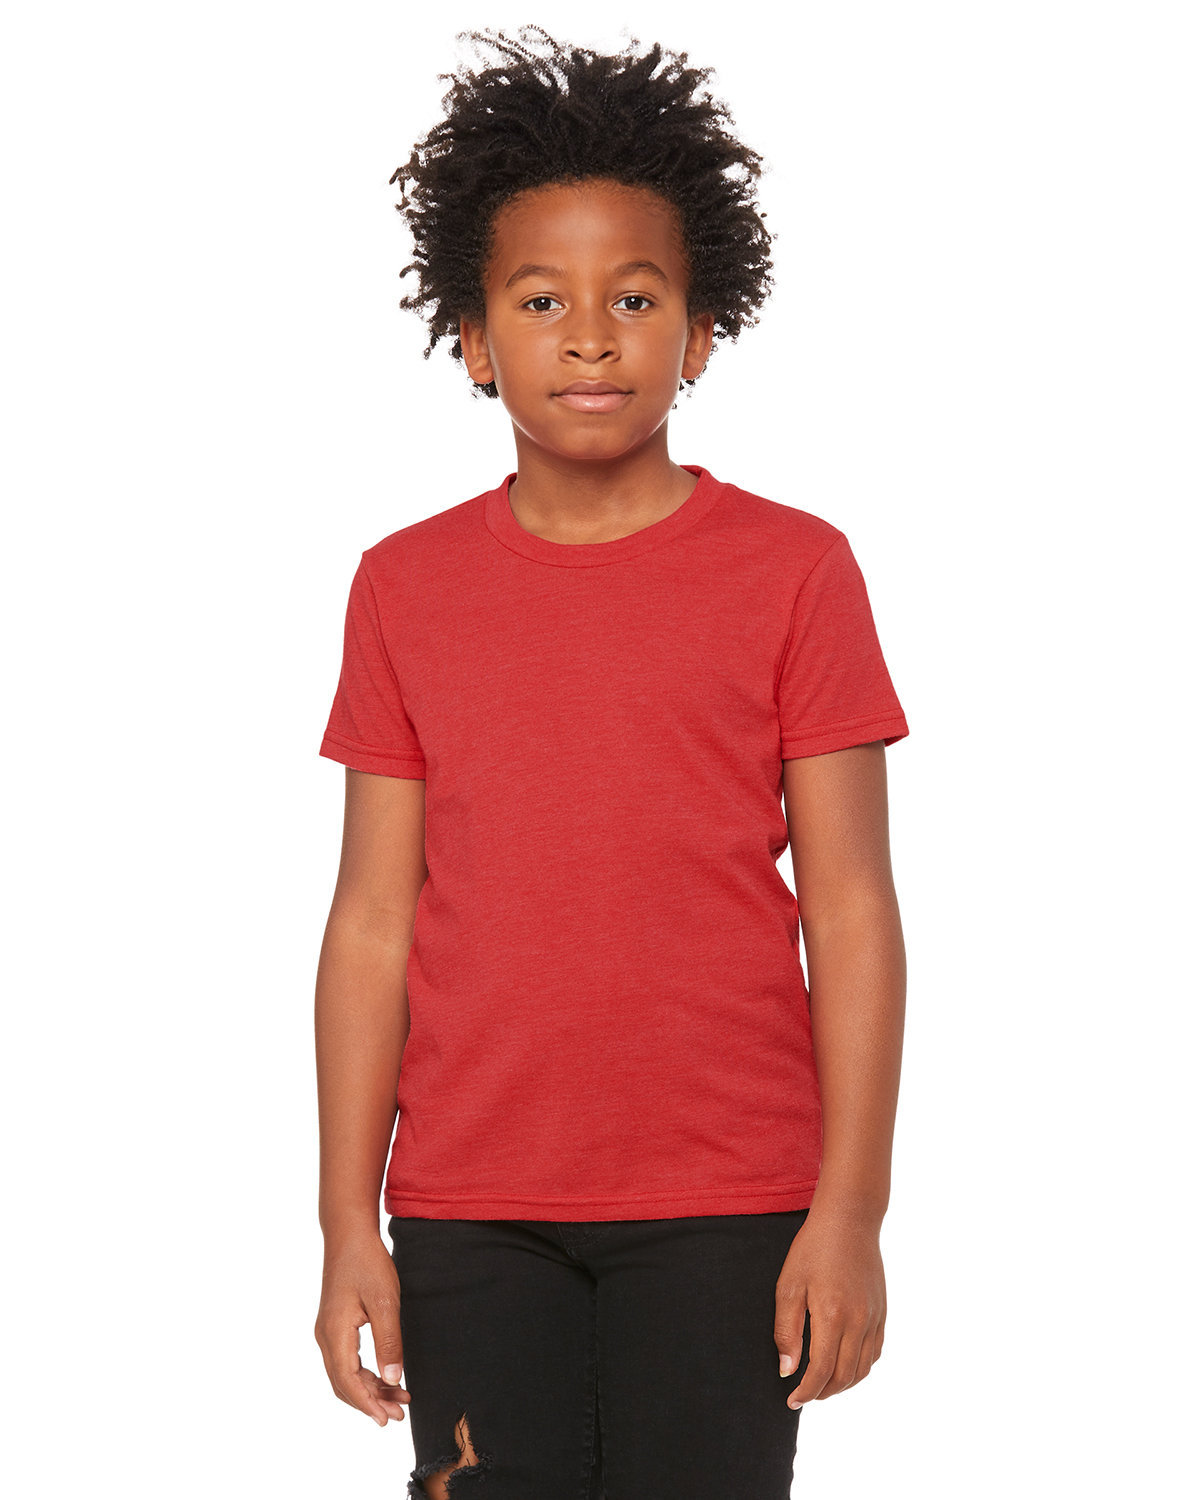 Bella + Canvas Youth Jersey T-Shirt HEATHER RED